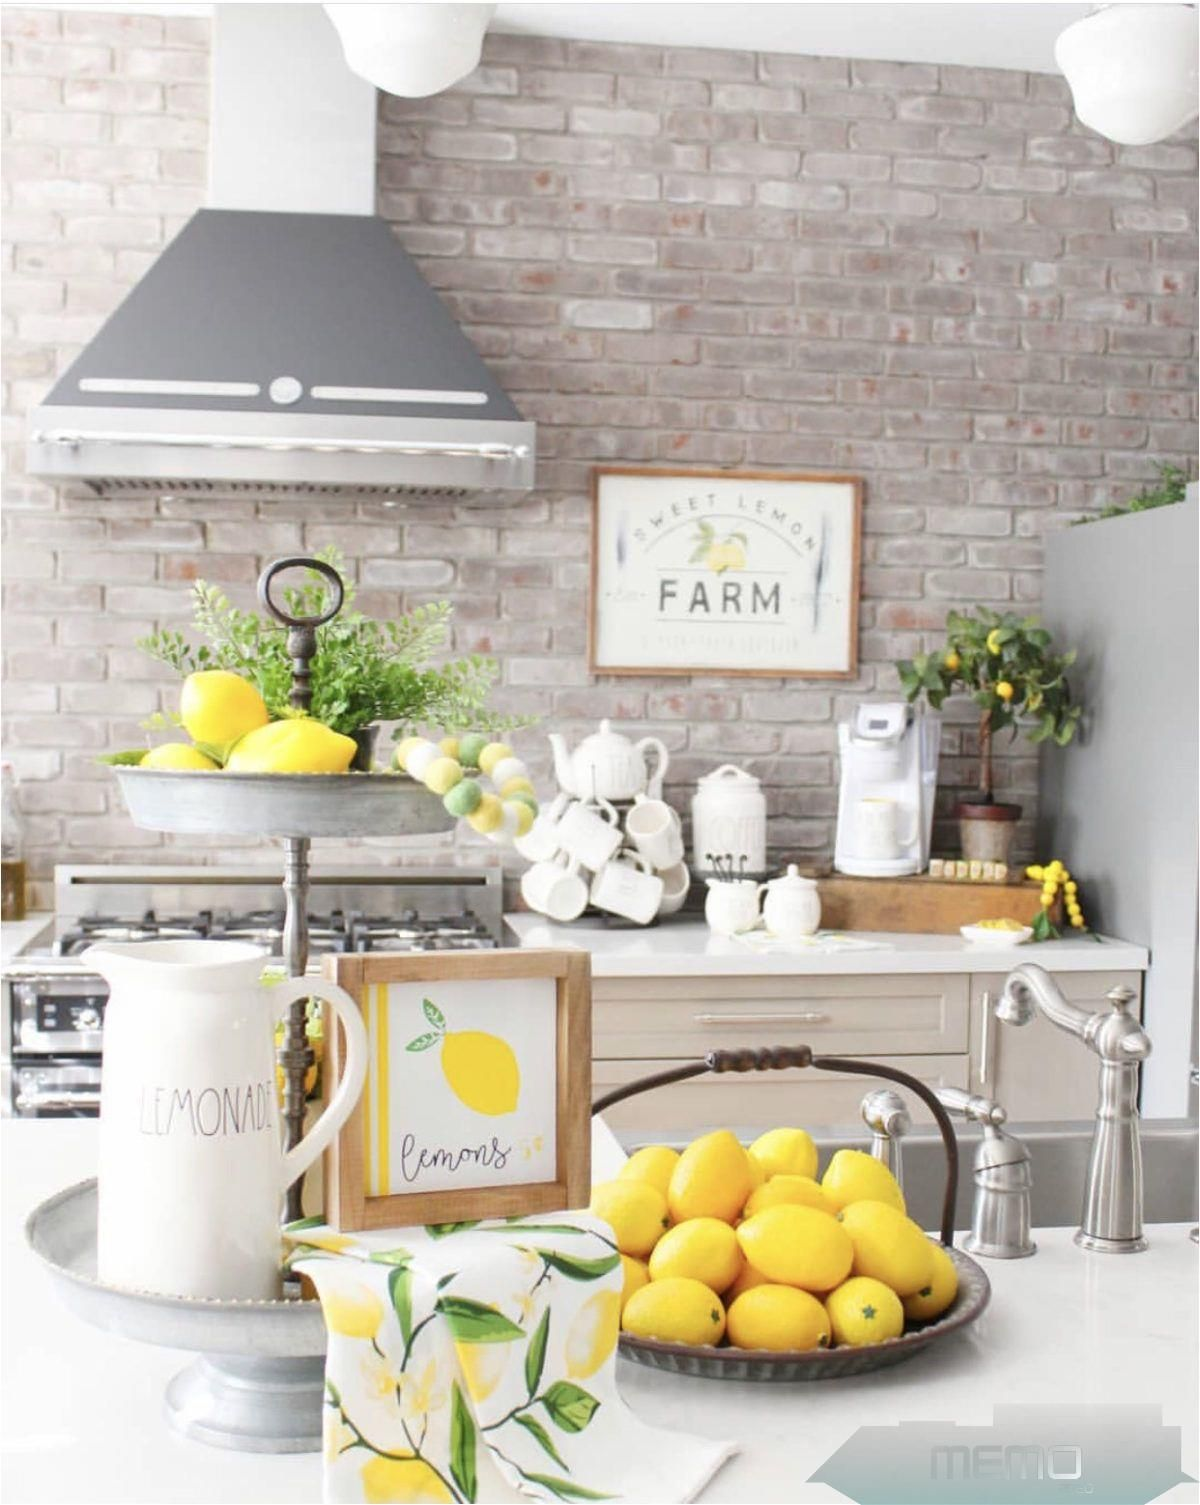 Jun 8, 8 - Lemon Decor Inspiring lemon decor ideas for your